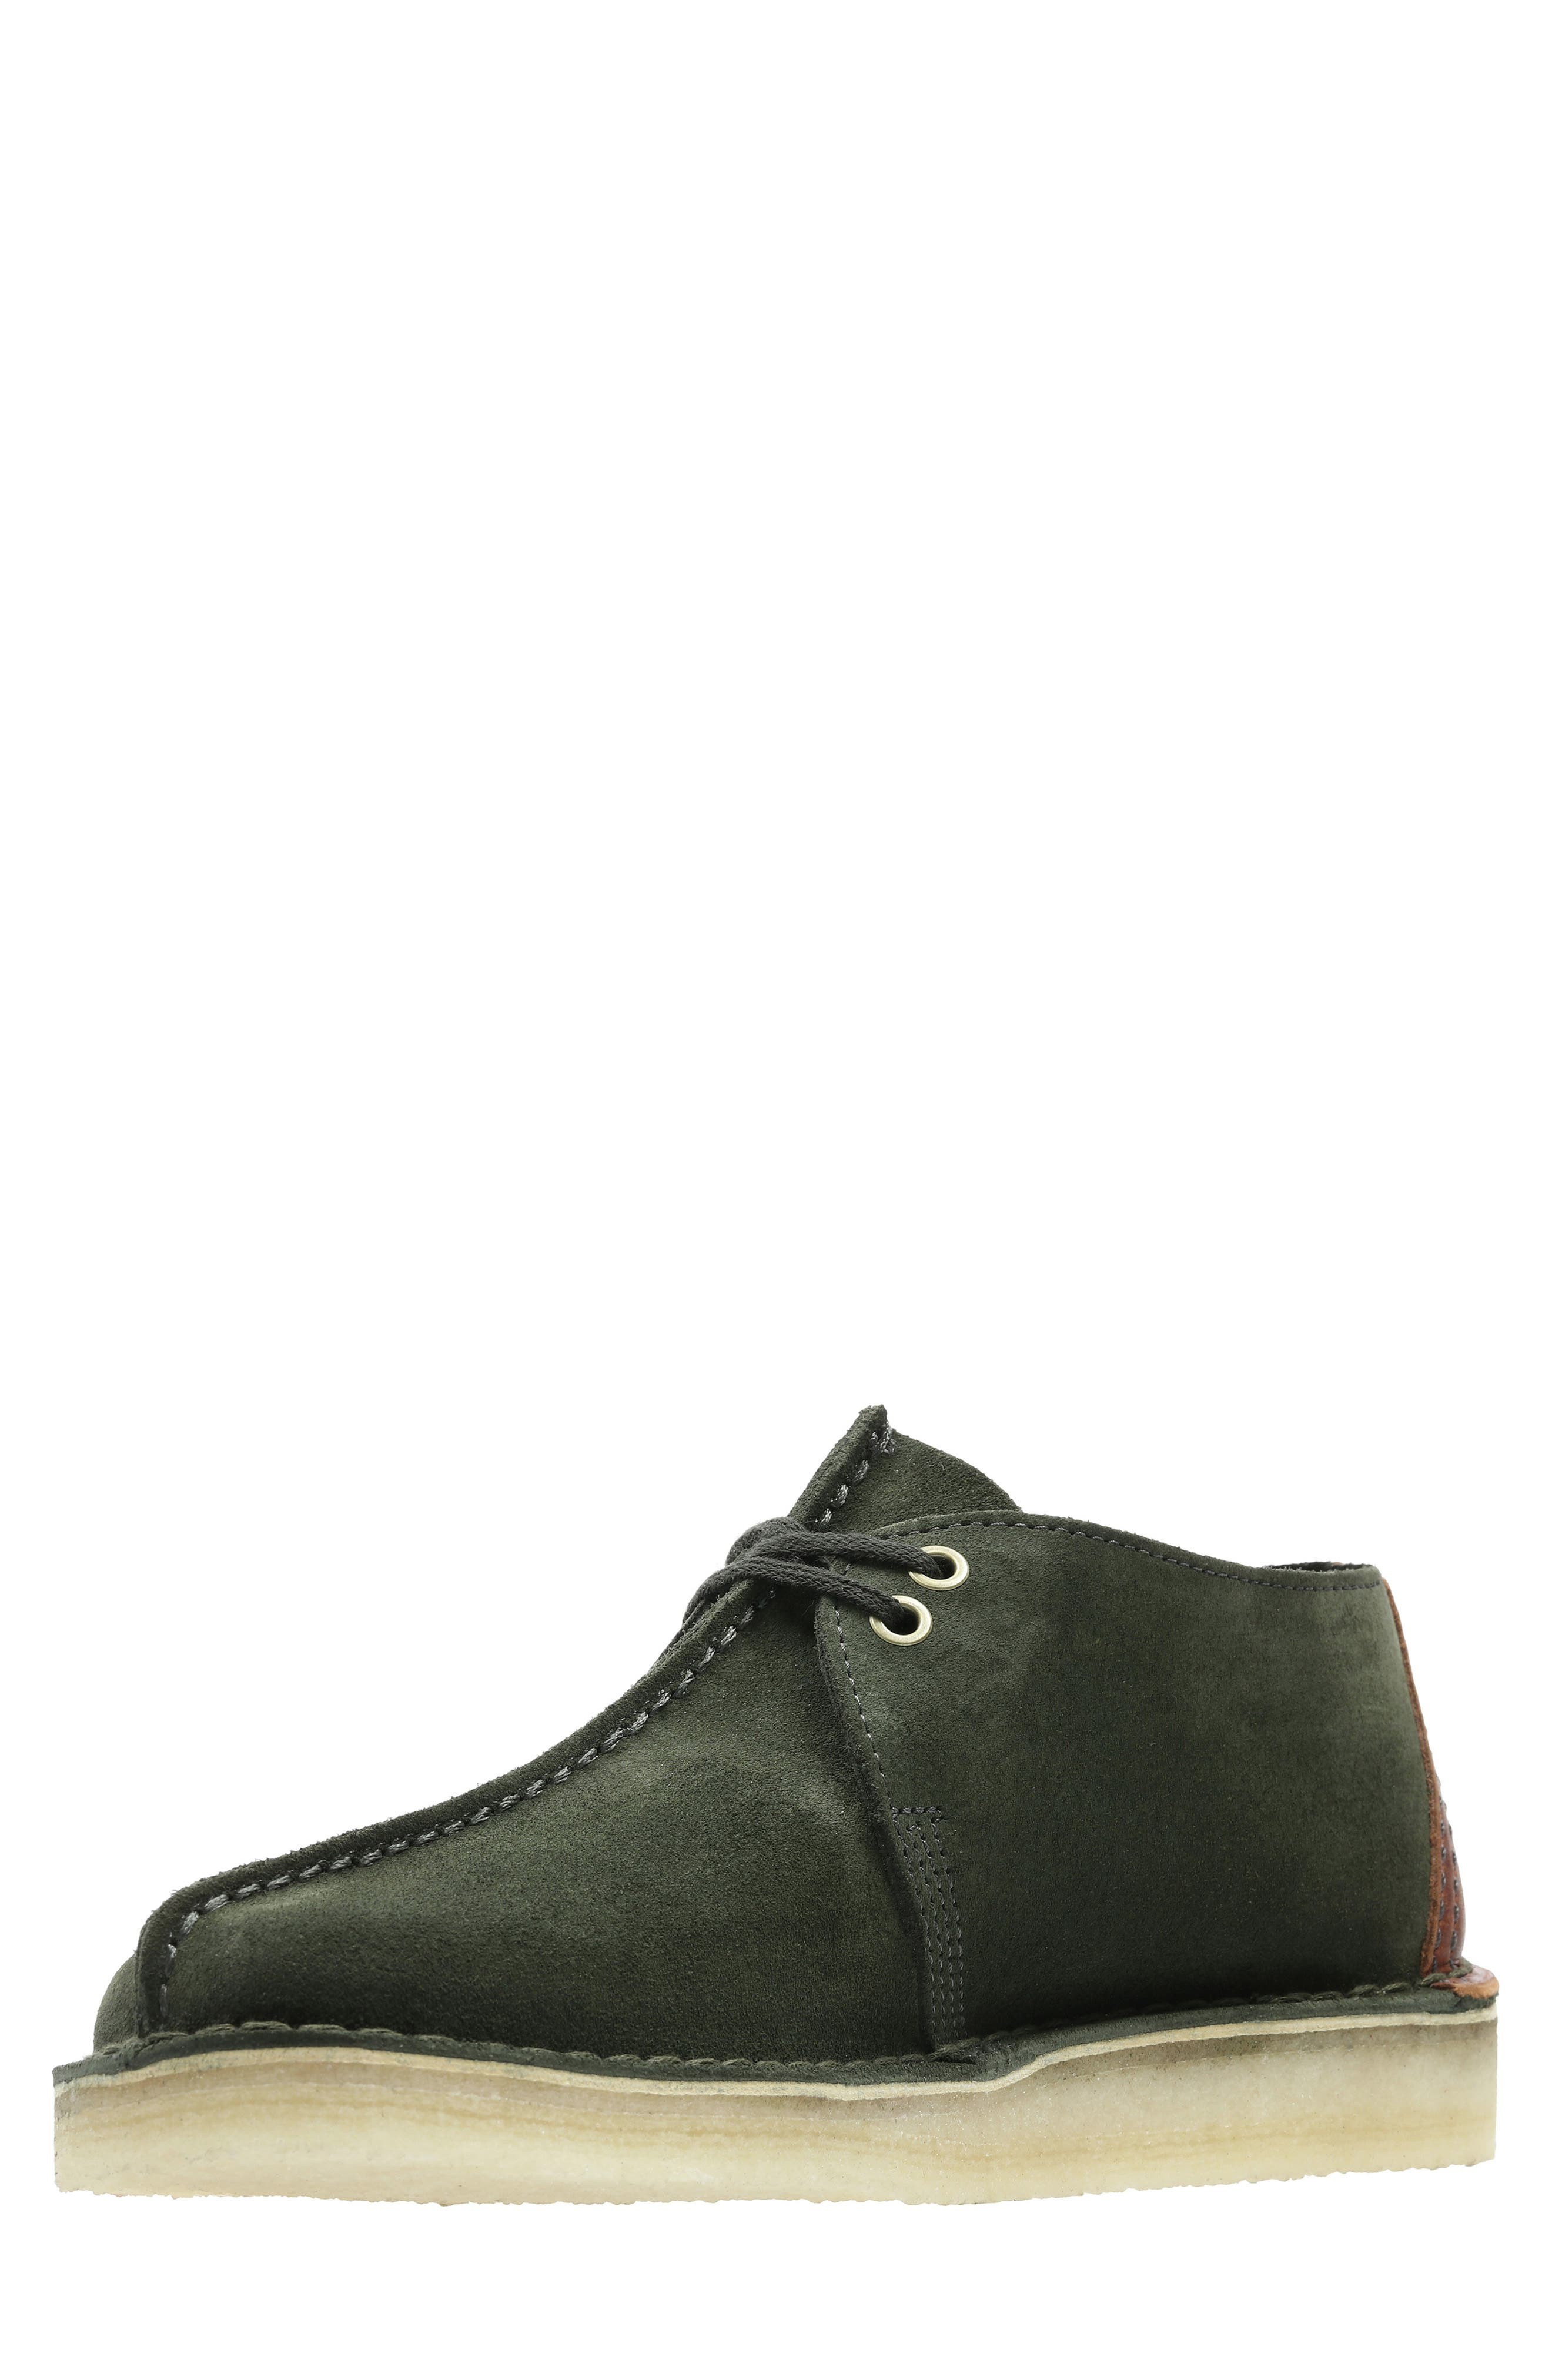 69e49c1b7 Clarks Men s Shoes